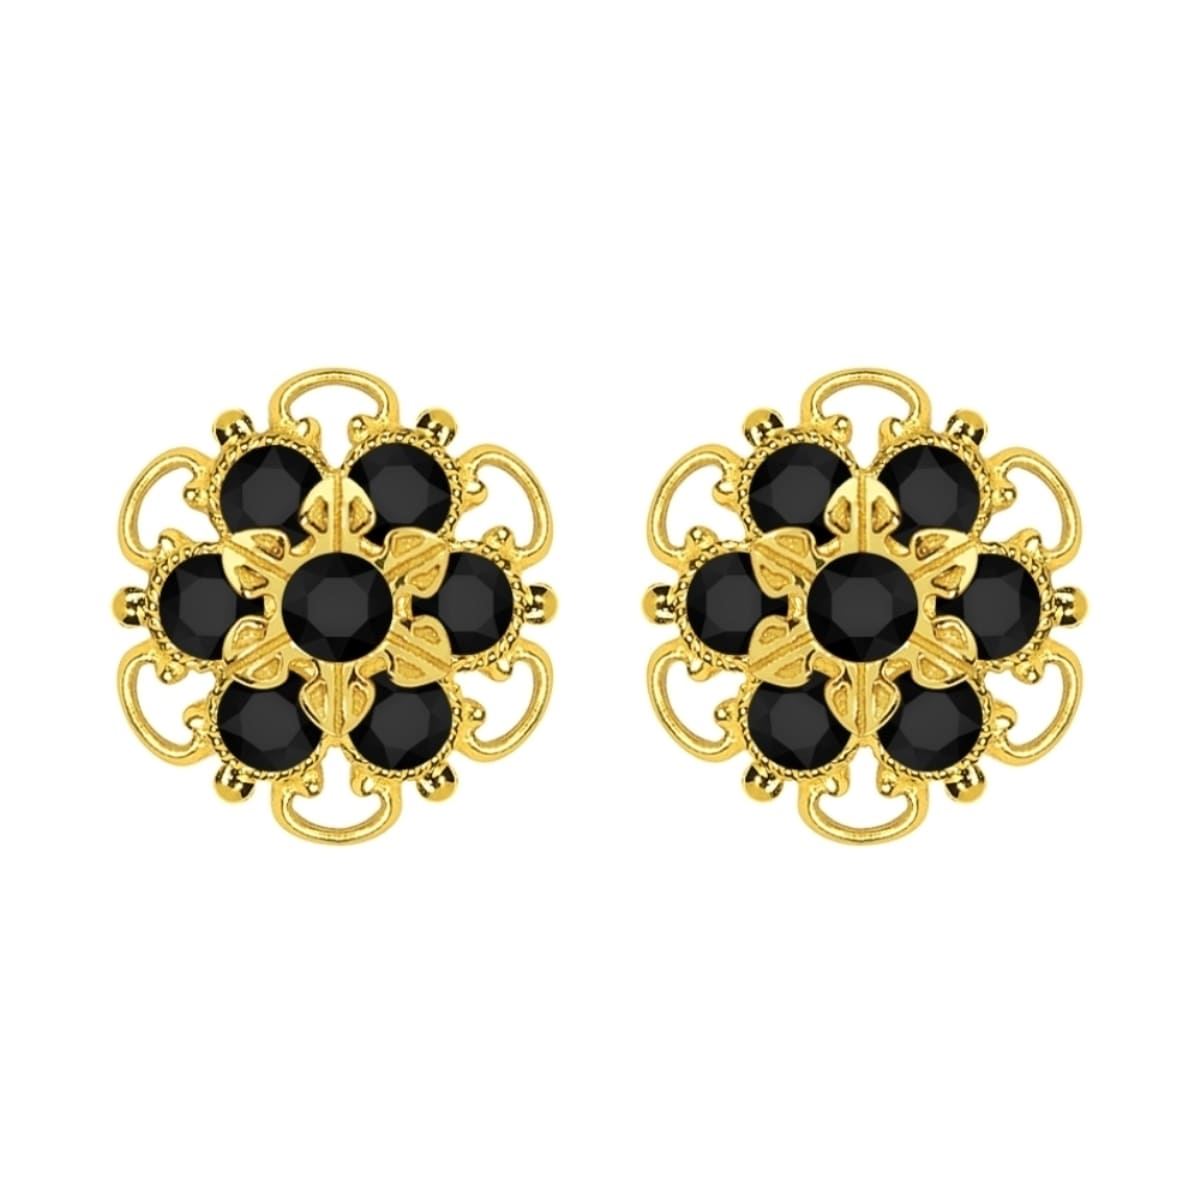 earring black romantic nerh design crystal water fashion from gr earrings drop in stud women jewelry jwk item for